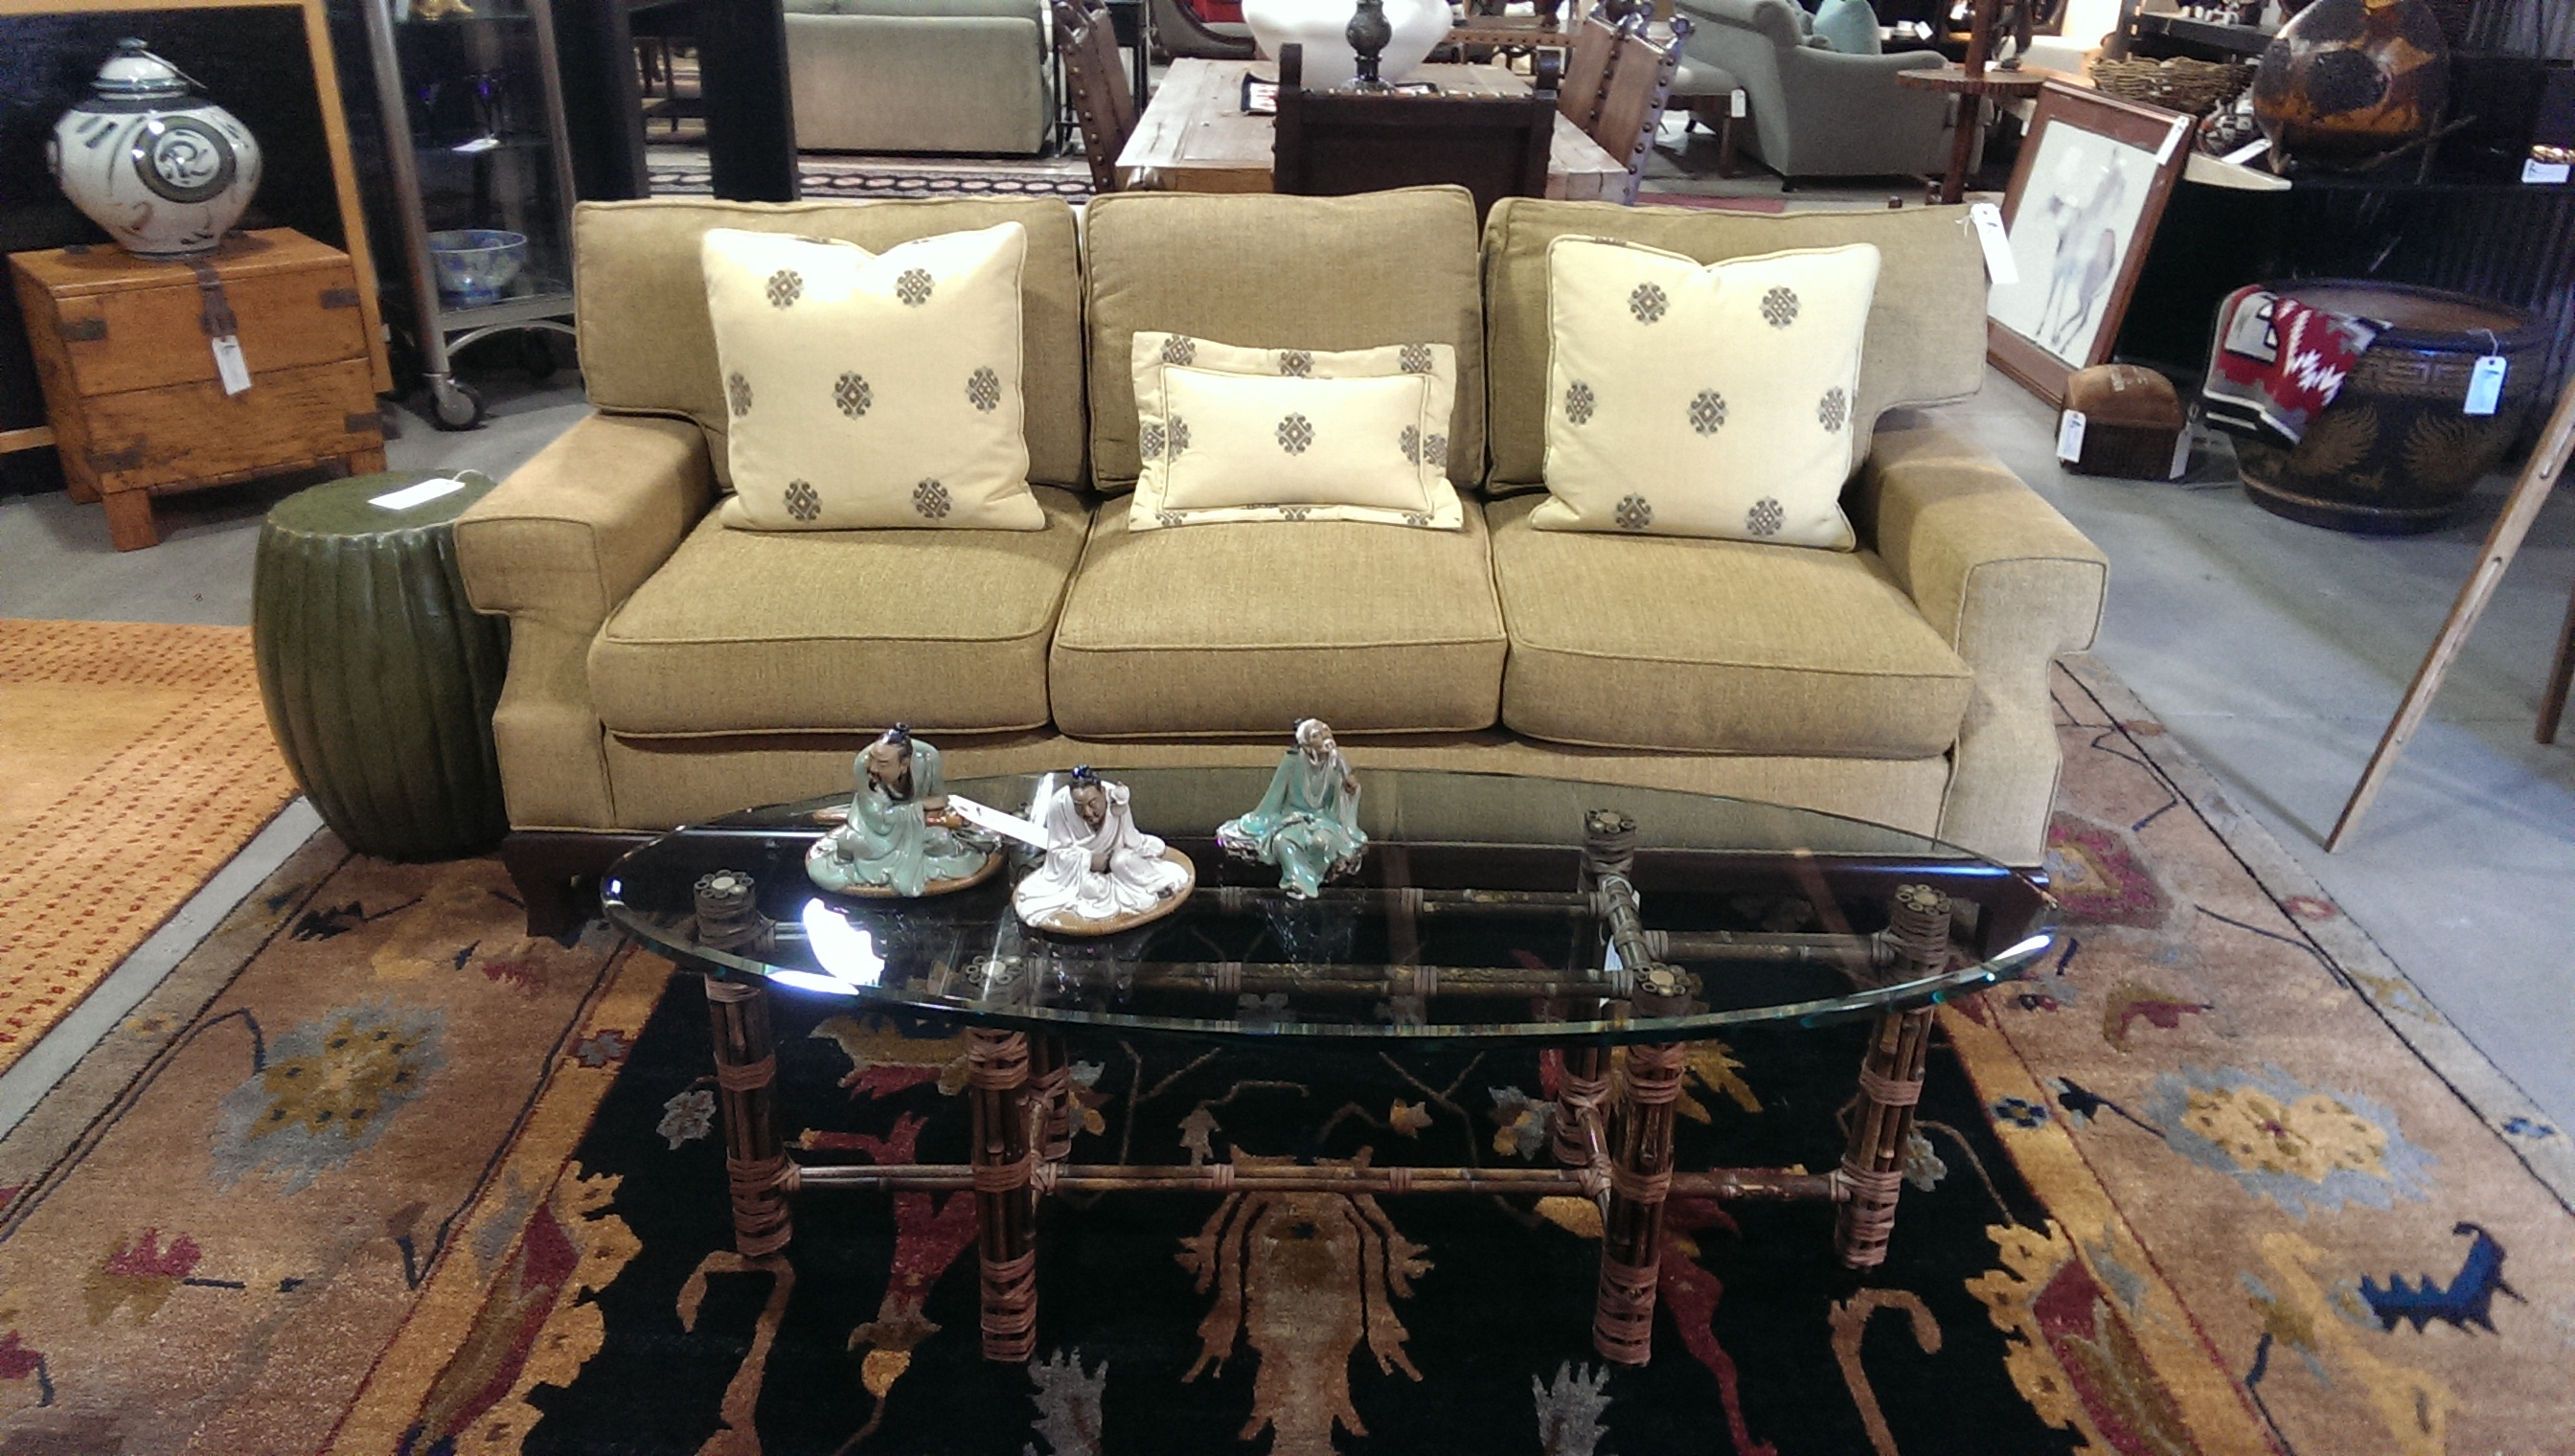 u2013Latest Arrivals Friday April 17thu2013 & a. rudin   Seams to Fit Home